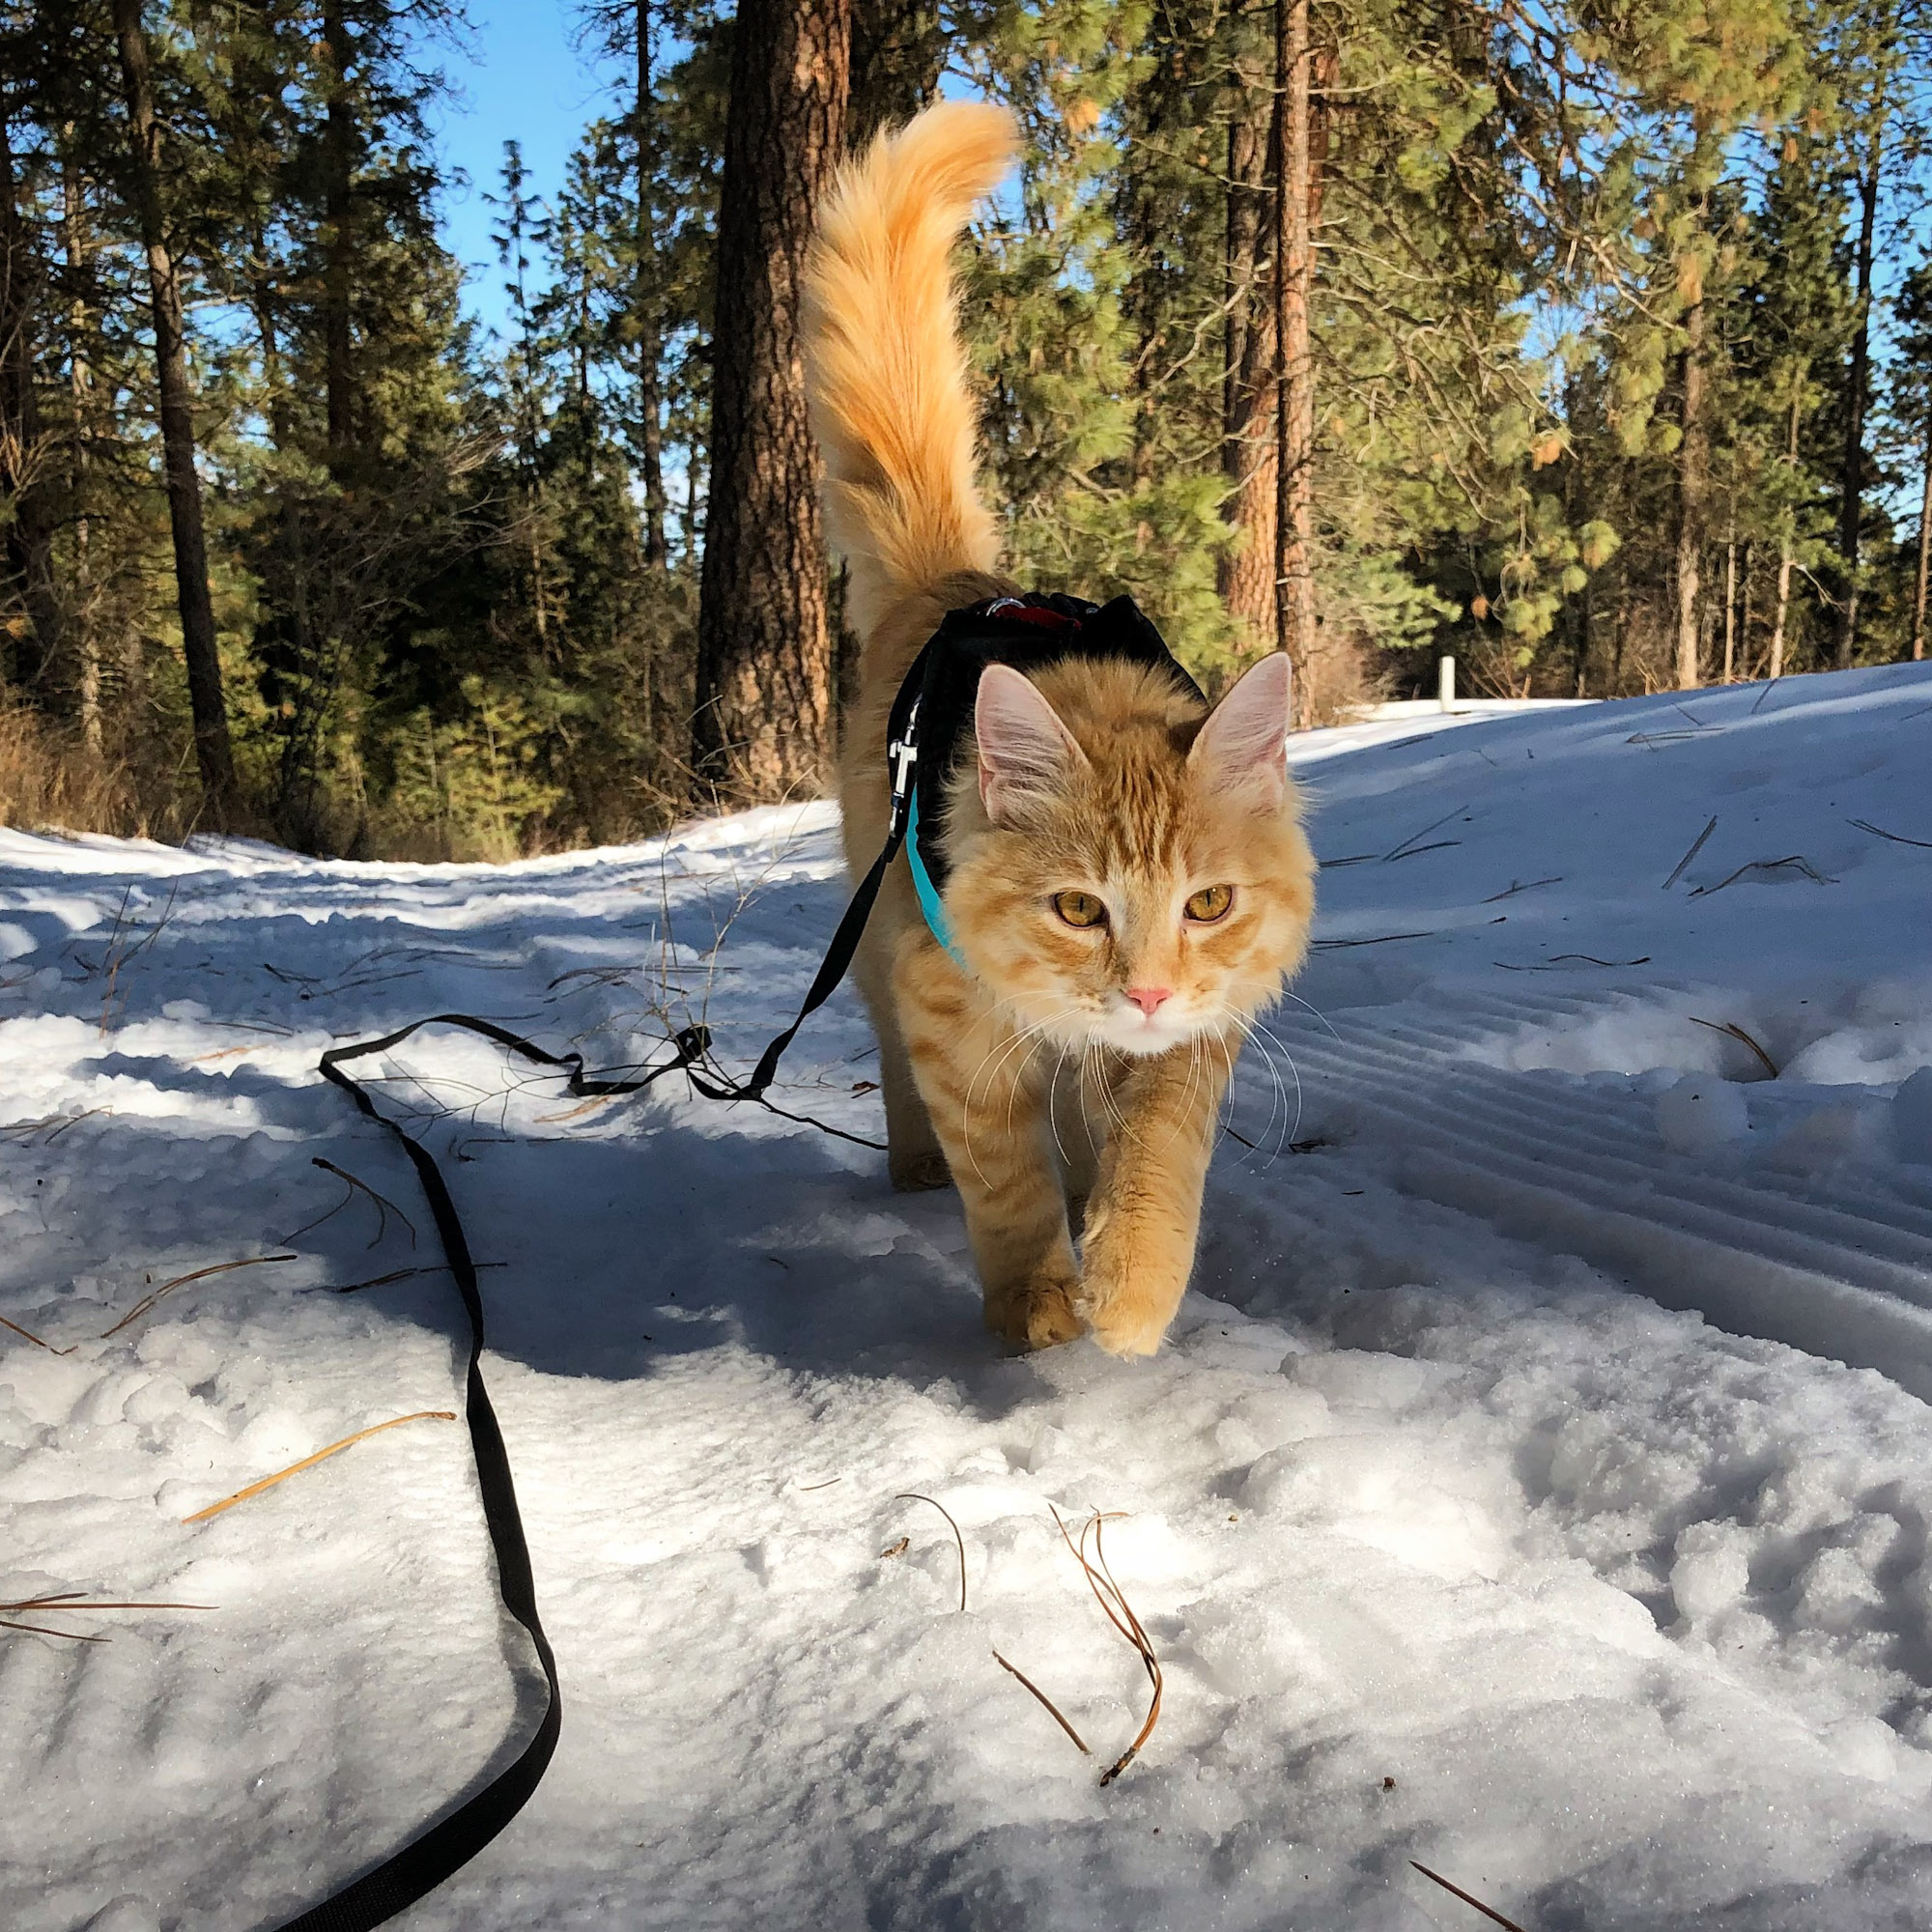 adventure cat holds tail high as he hikes in snow